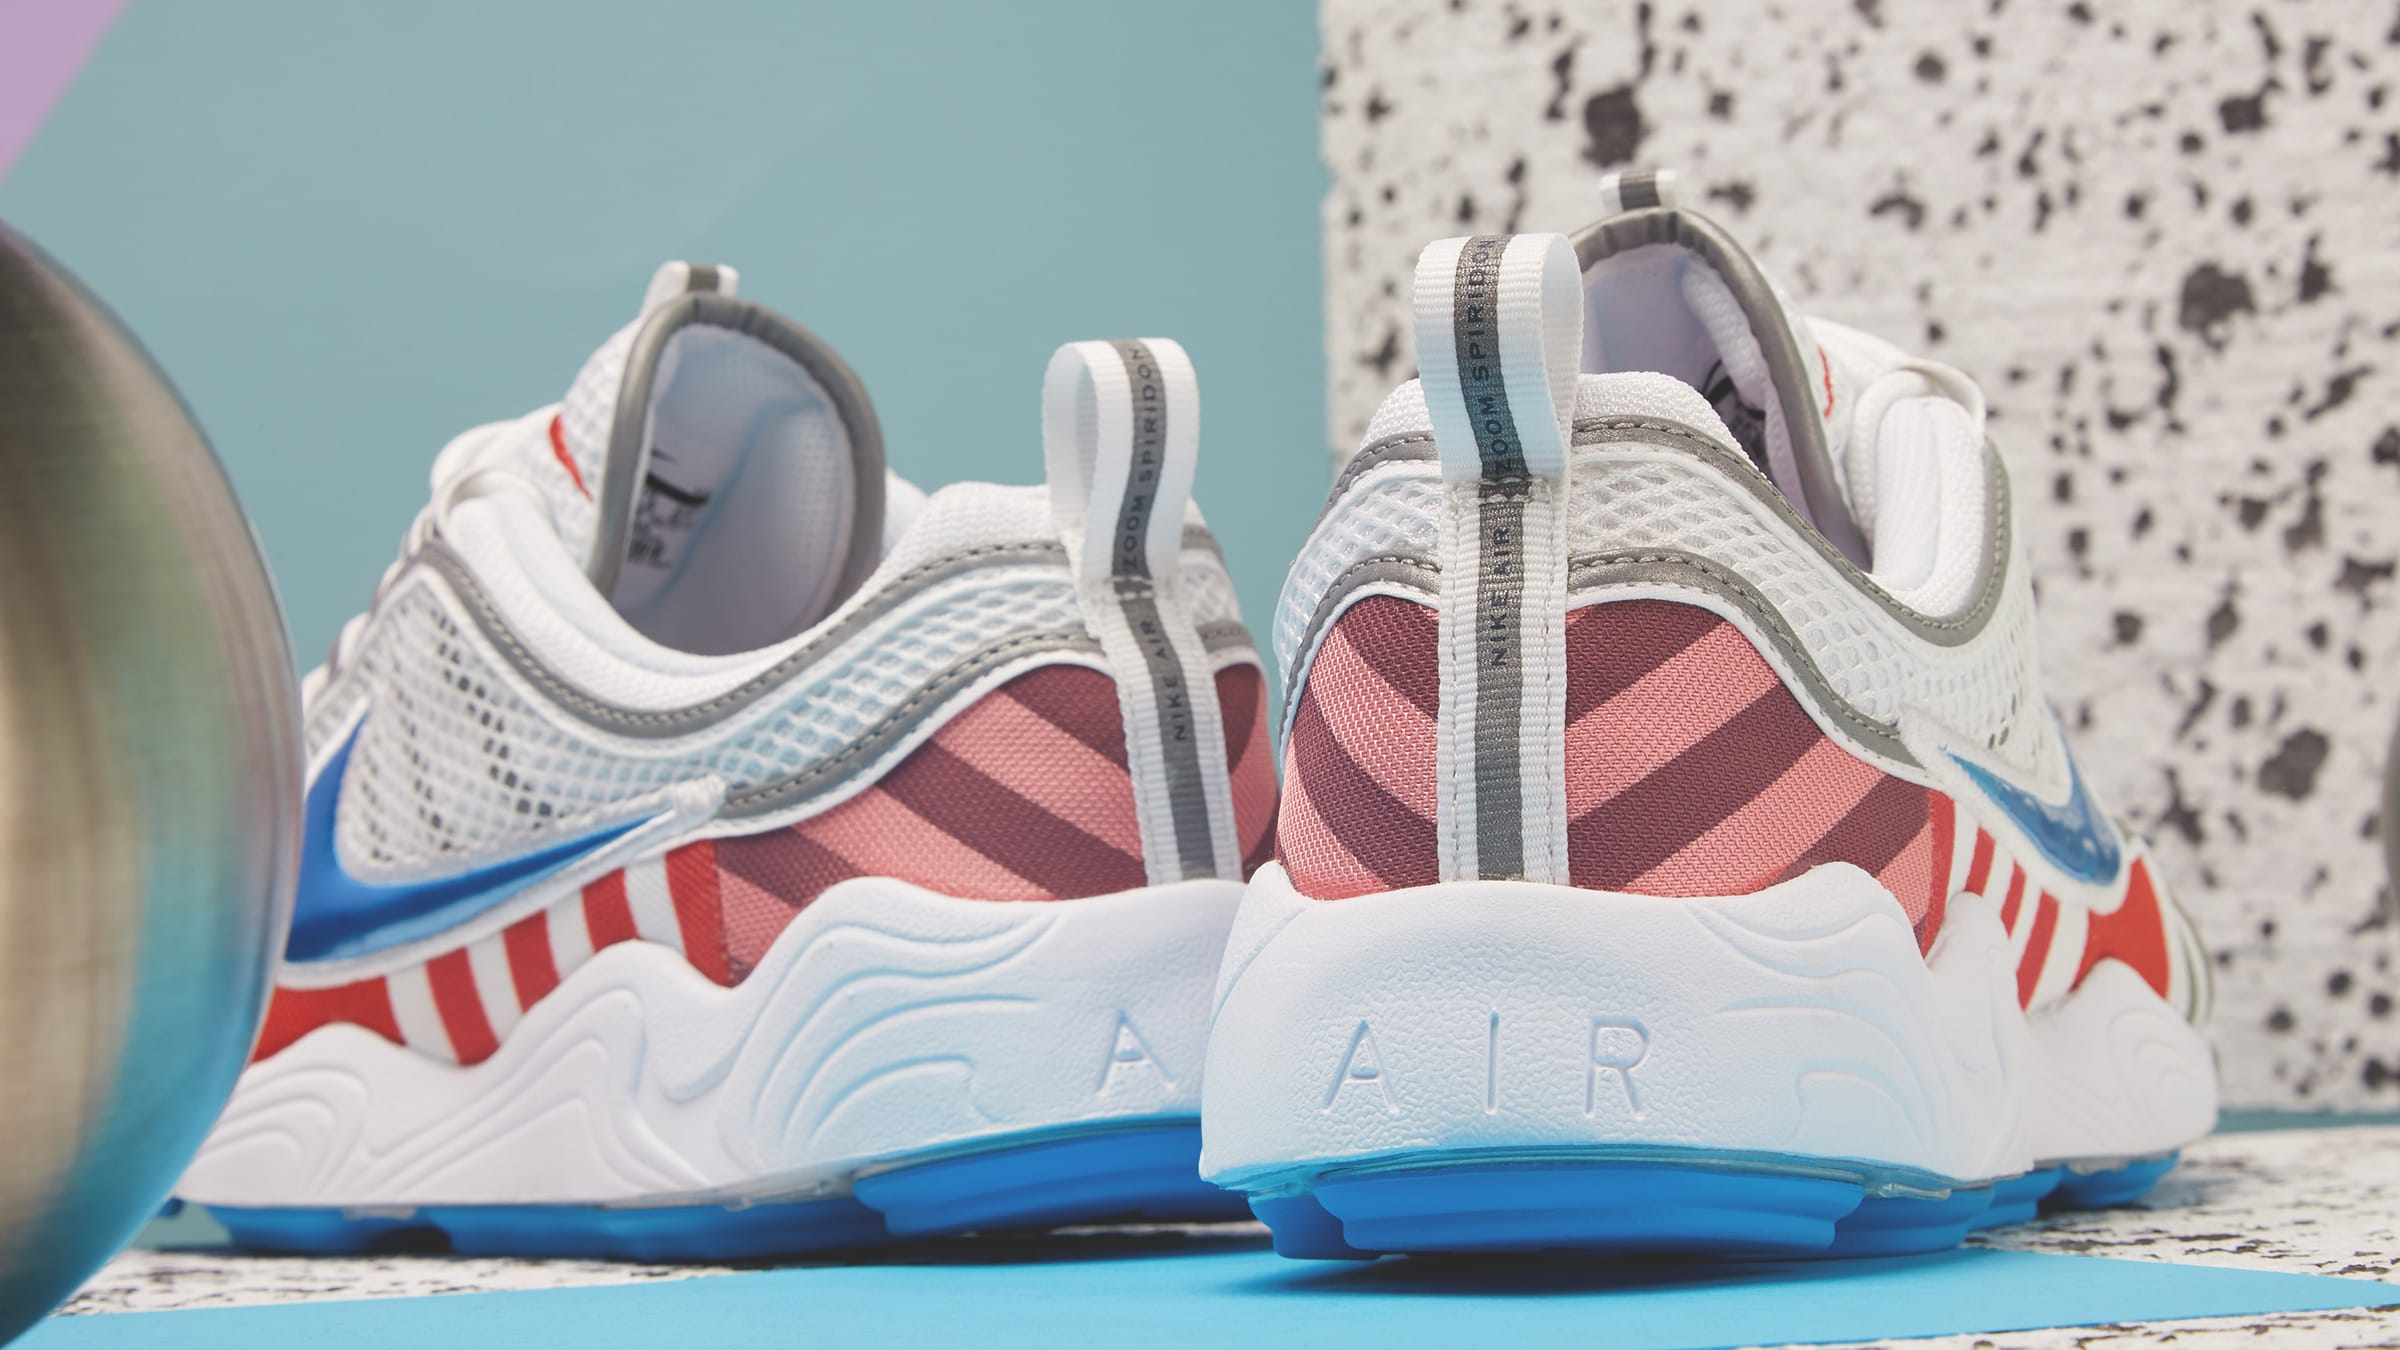 6f3056c3a01f8 ... Dutch artist Piet Parra adds the final stroke to his Parra x Nike  collaboration with the release of a responsive runner  the Air Zoom Spiridon .